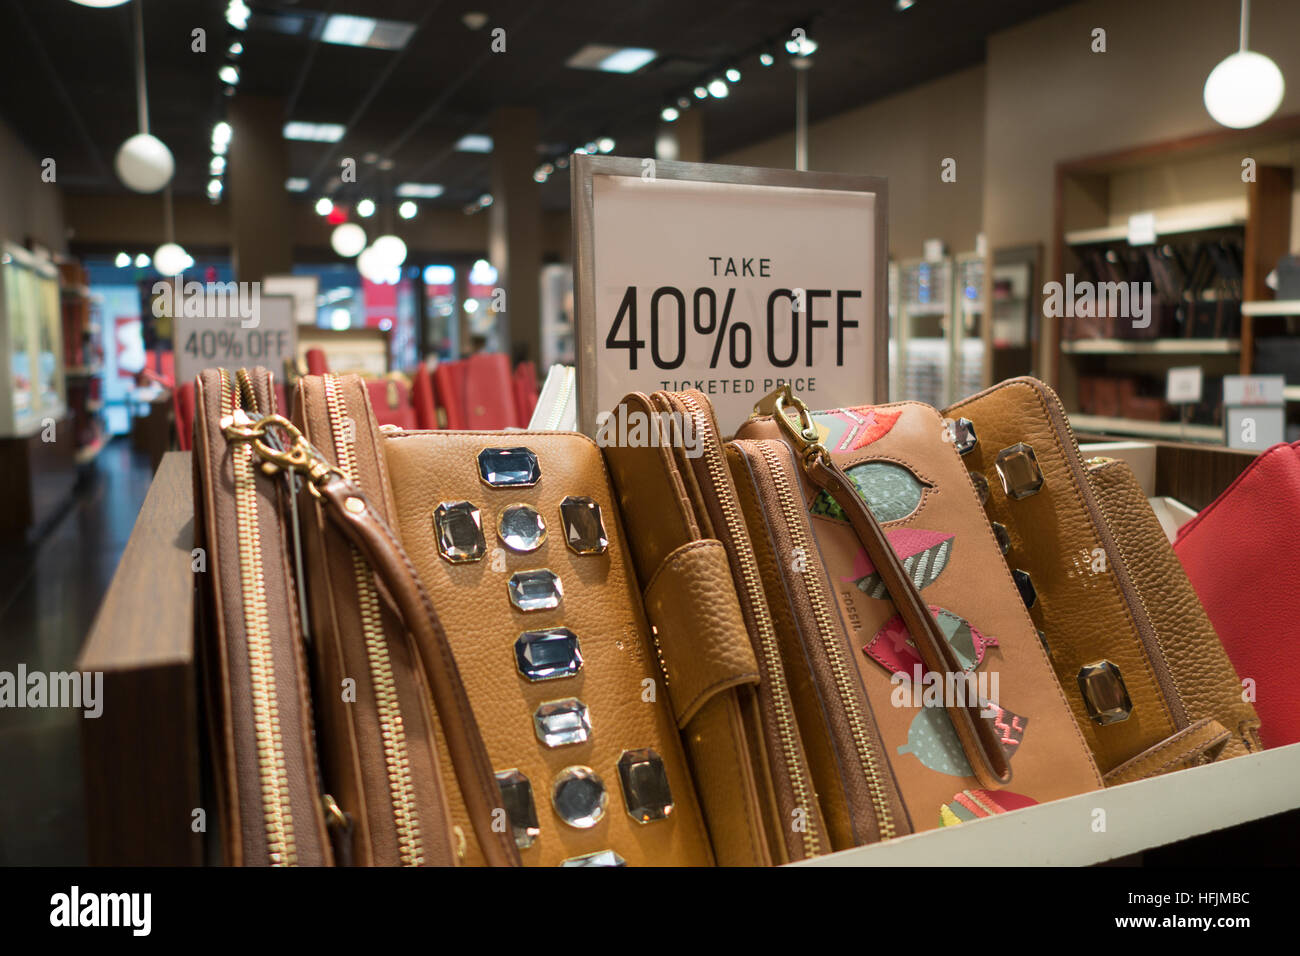 ladies clutch bags sale inside store - Stock Image